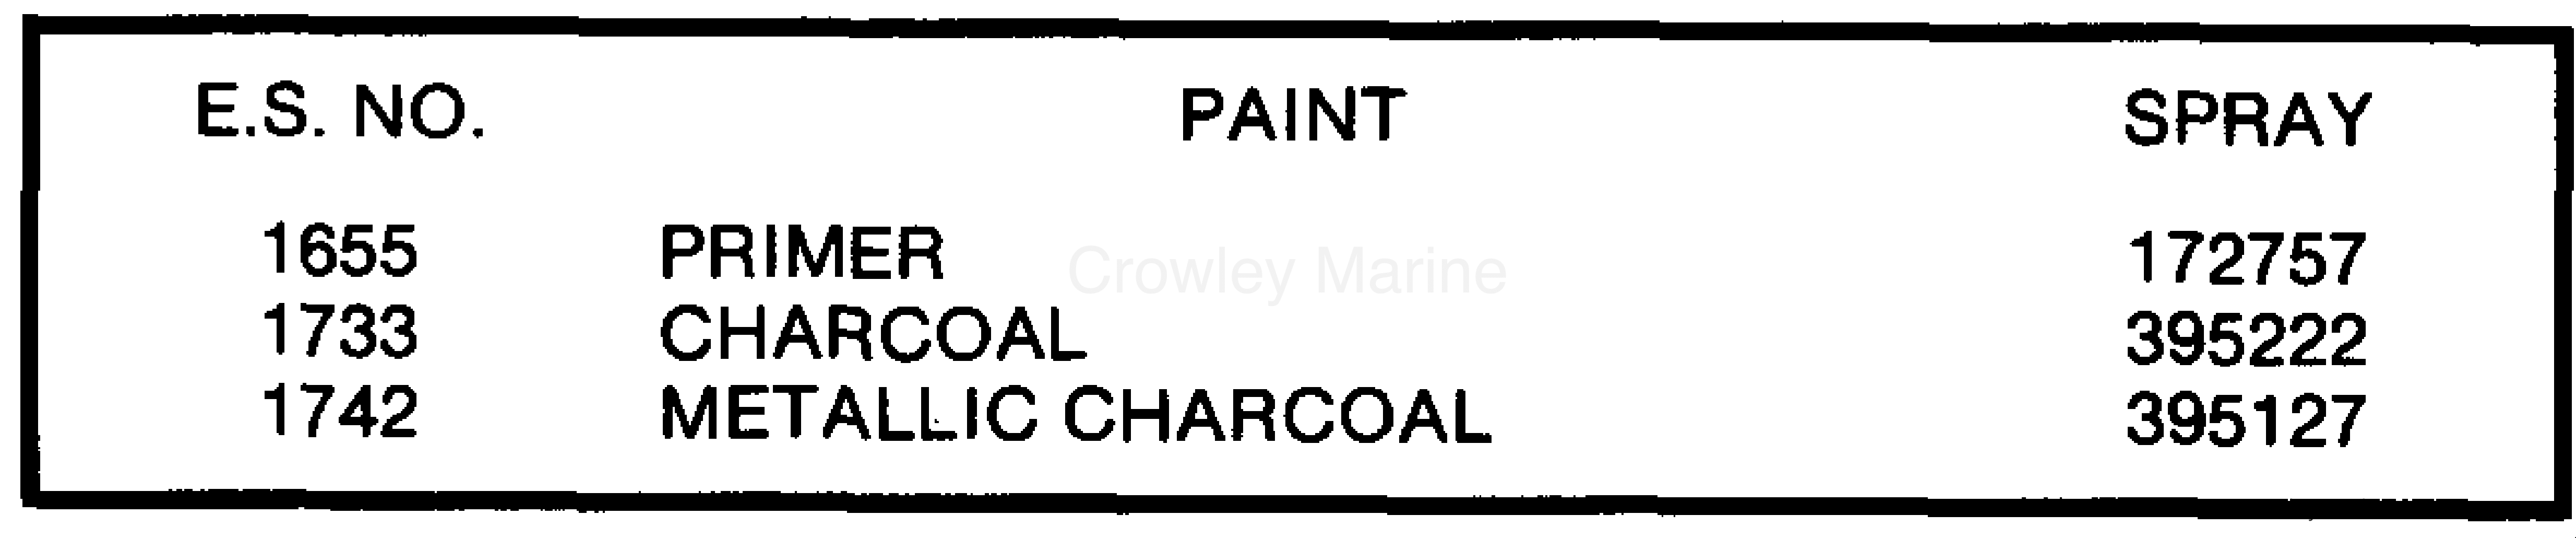 1988 OMC Stern Drive 2.3 - 232AMRGDE PAINT CHART section